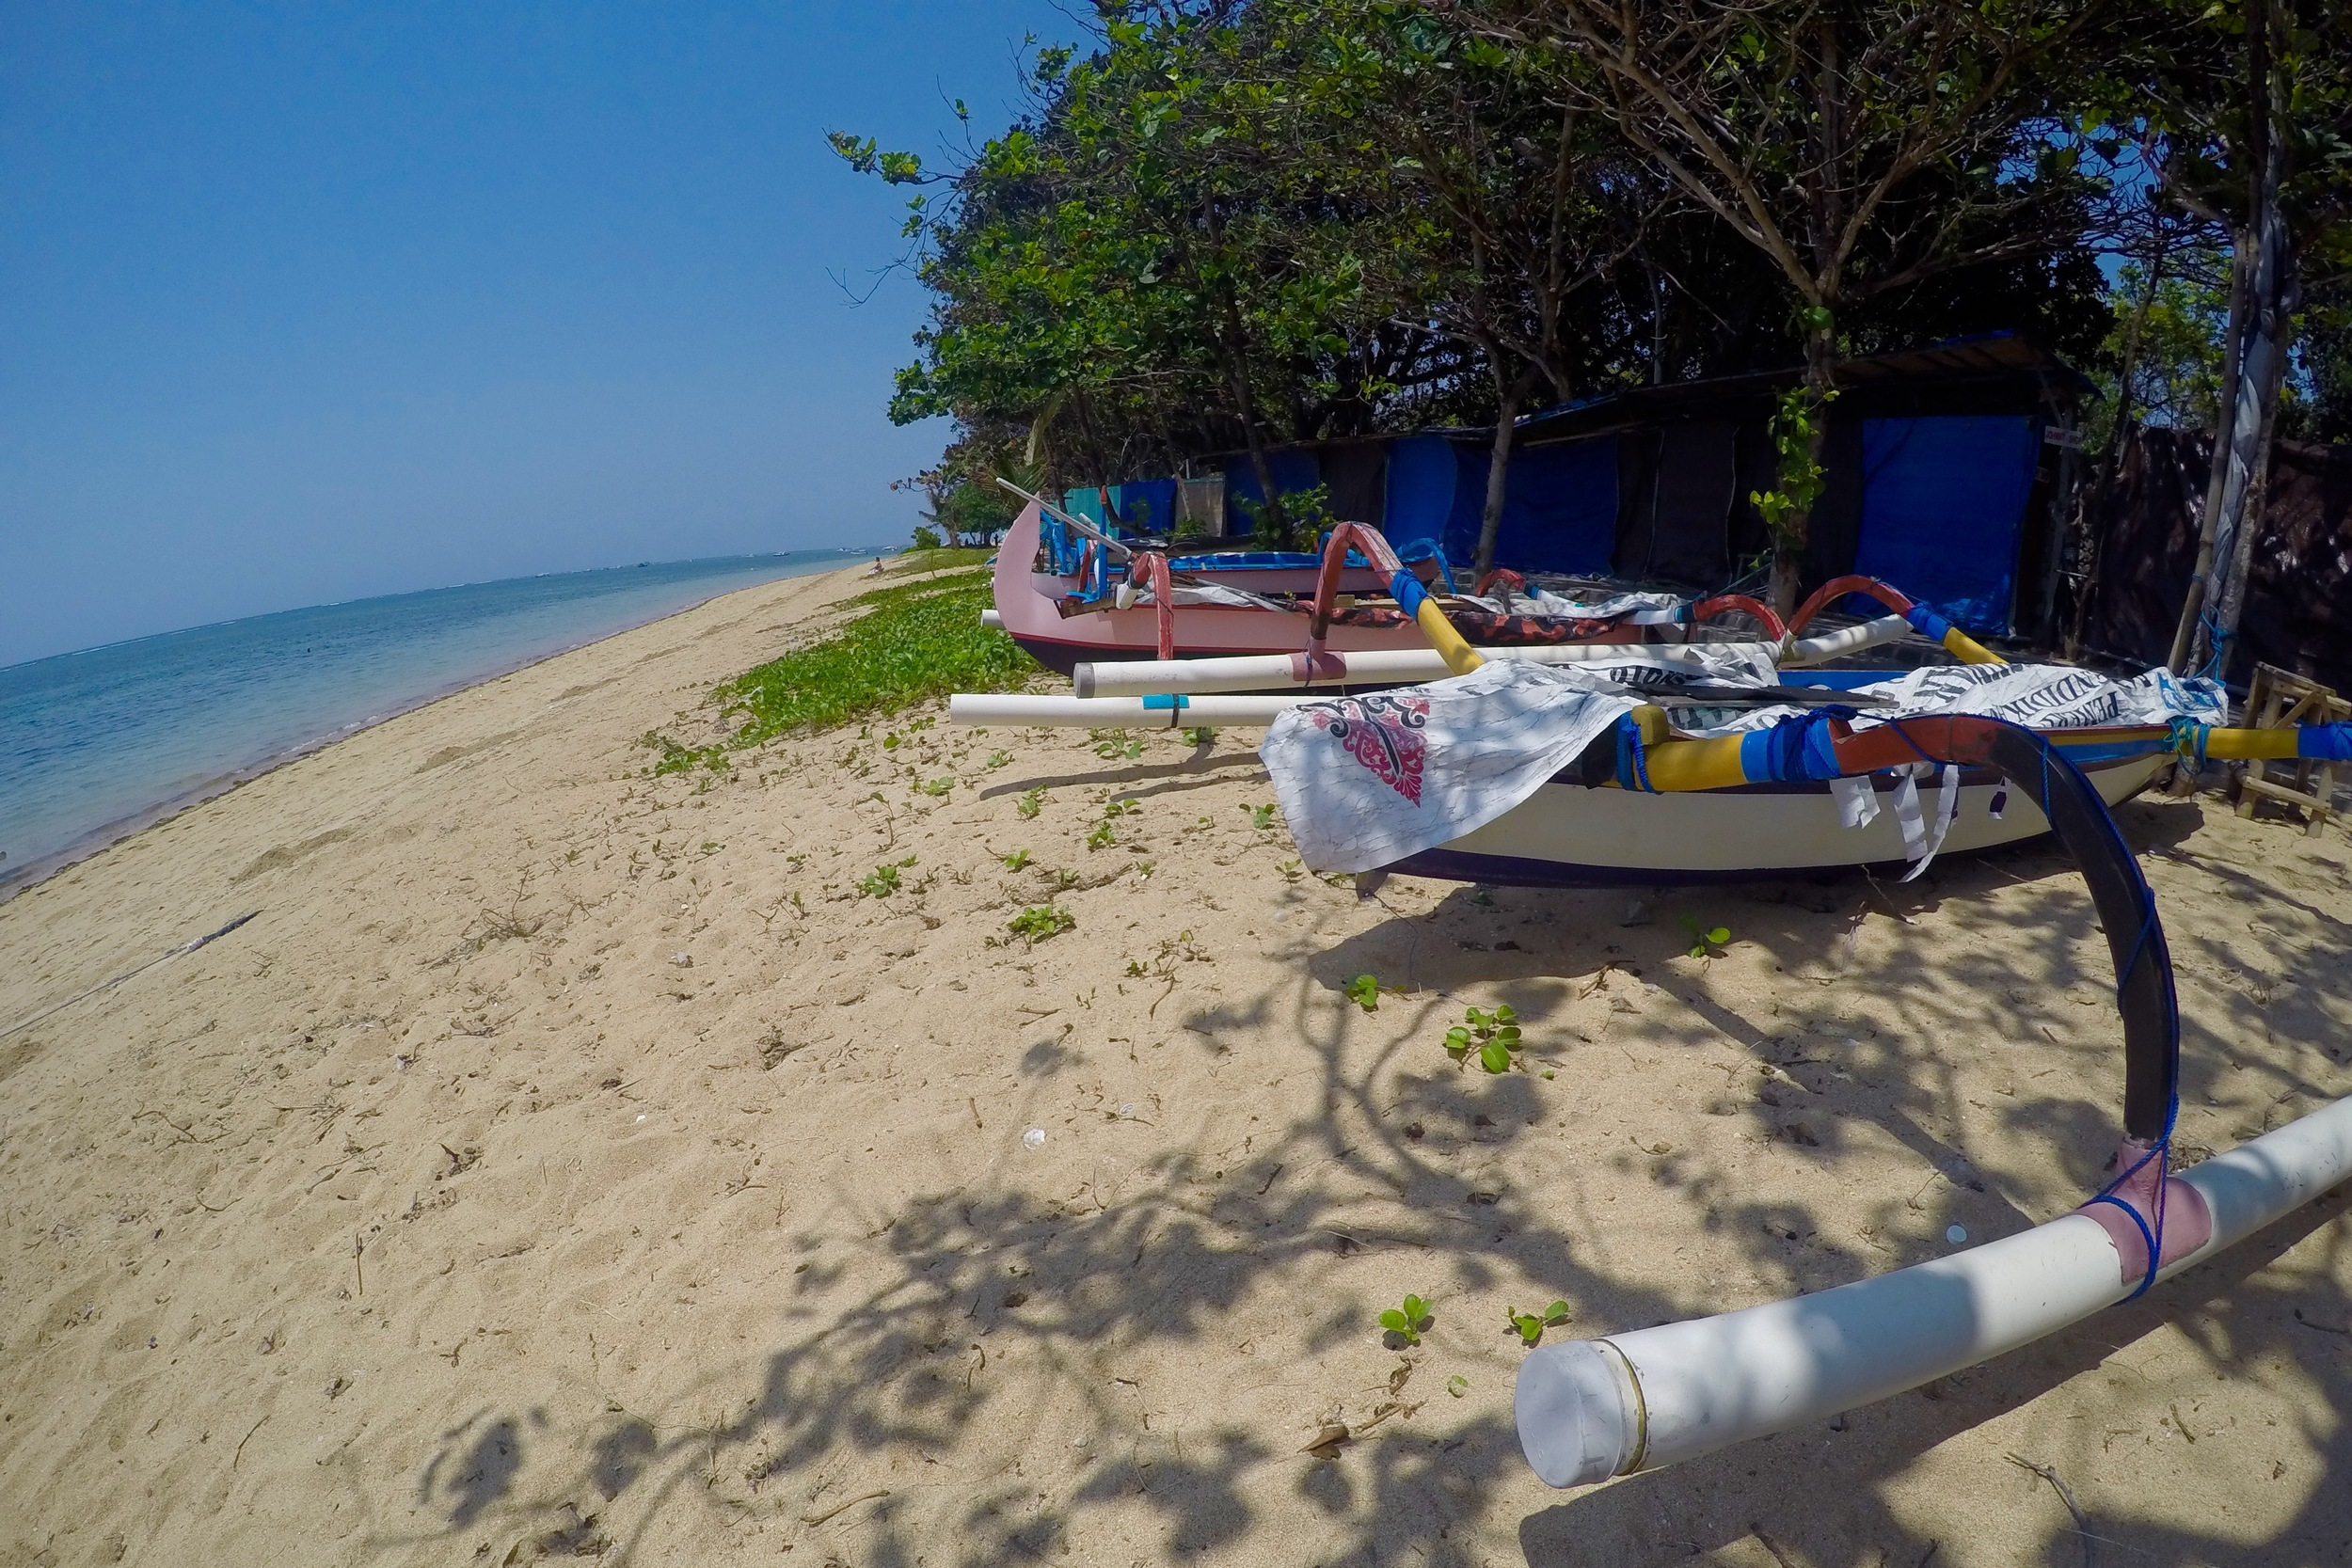 Balinese fishing boats have become iconic Sanur for me. © 2015 Gail Jessen, A Series of Adventures